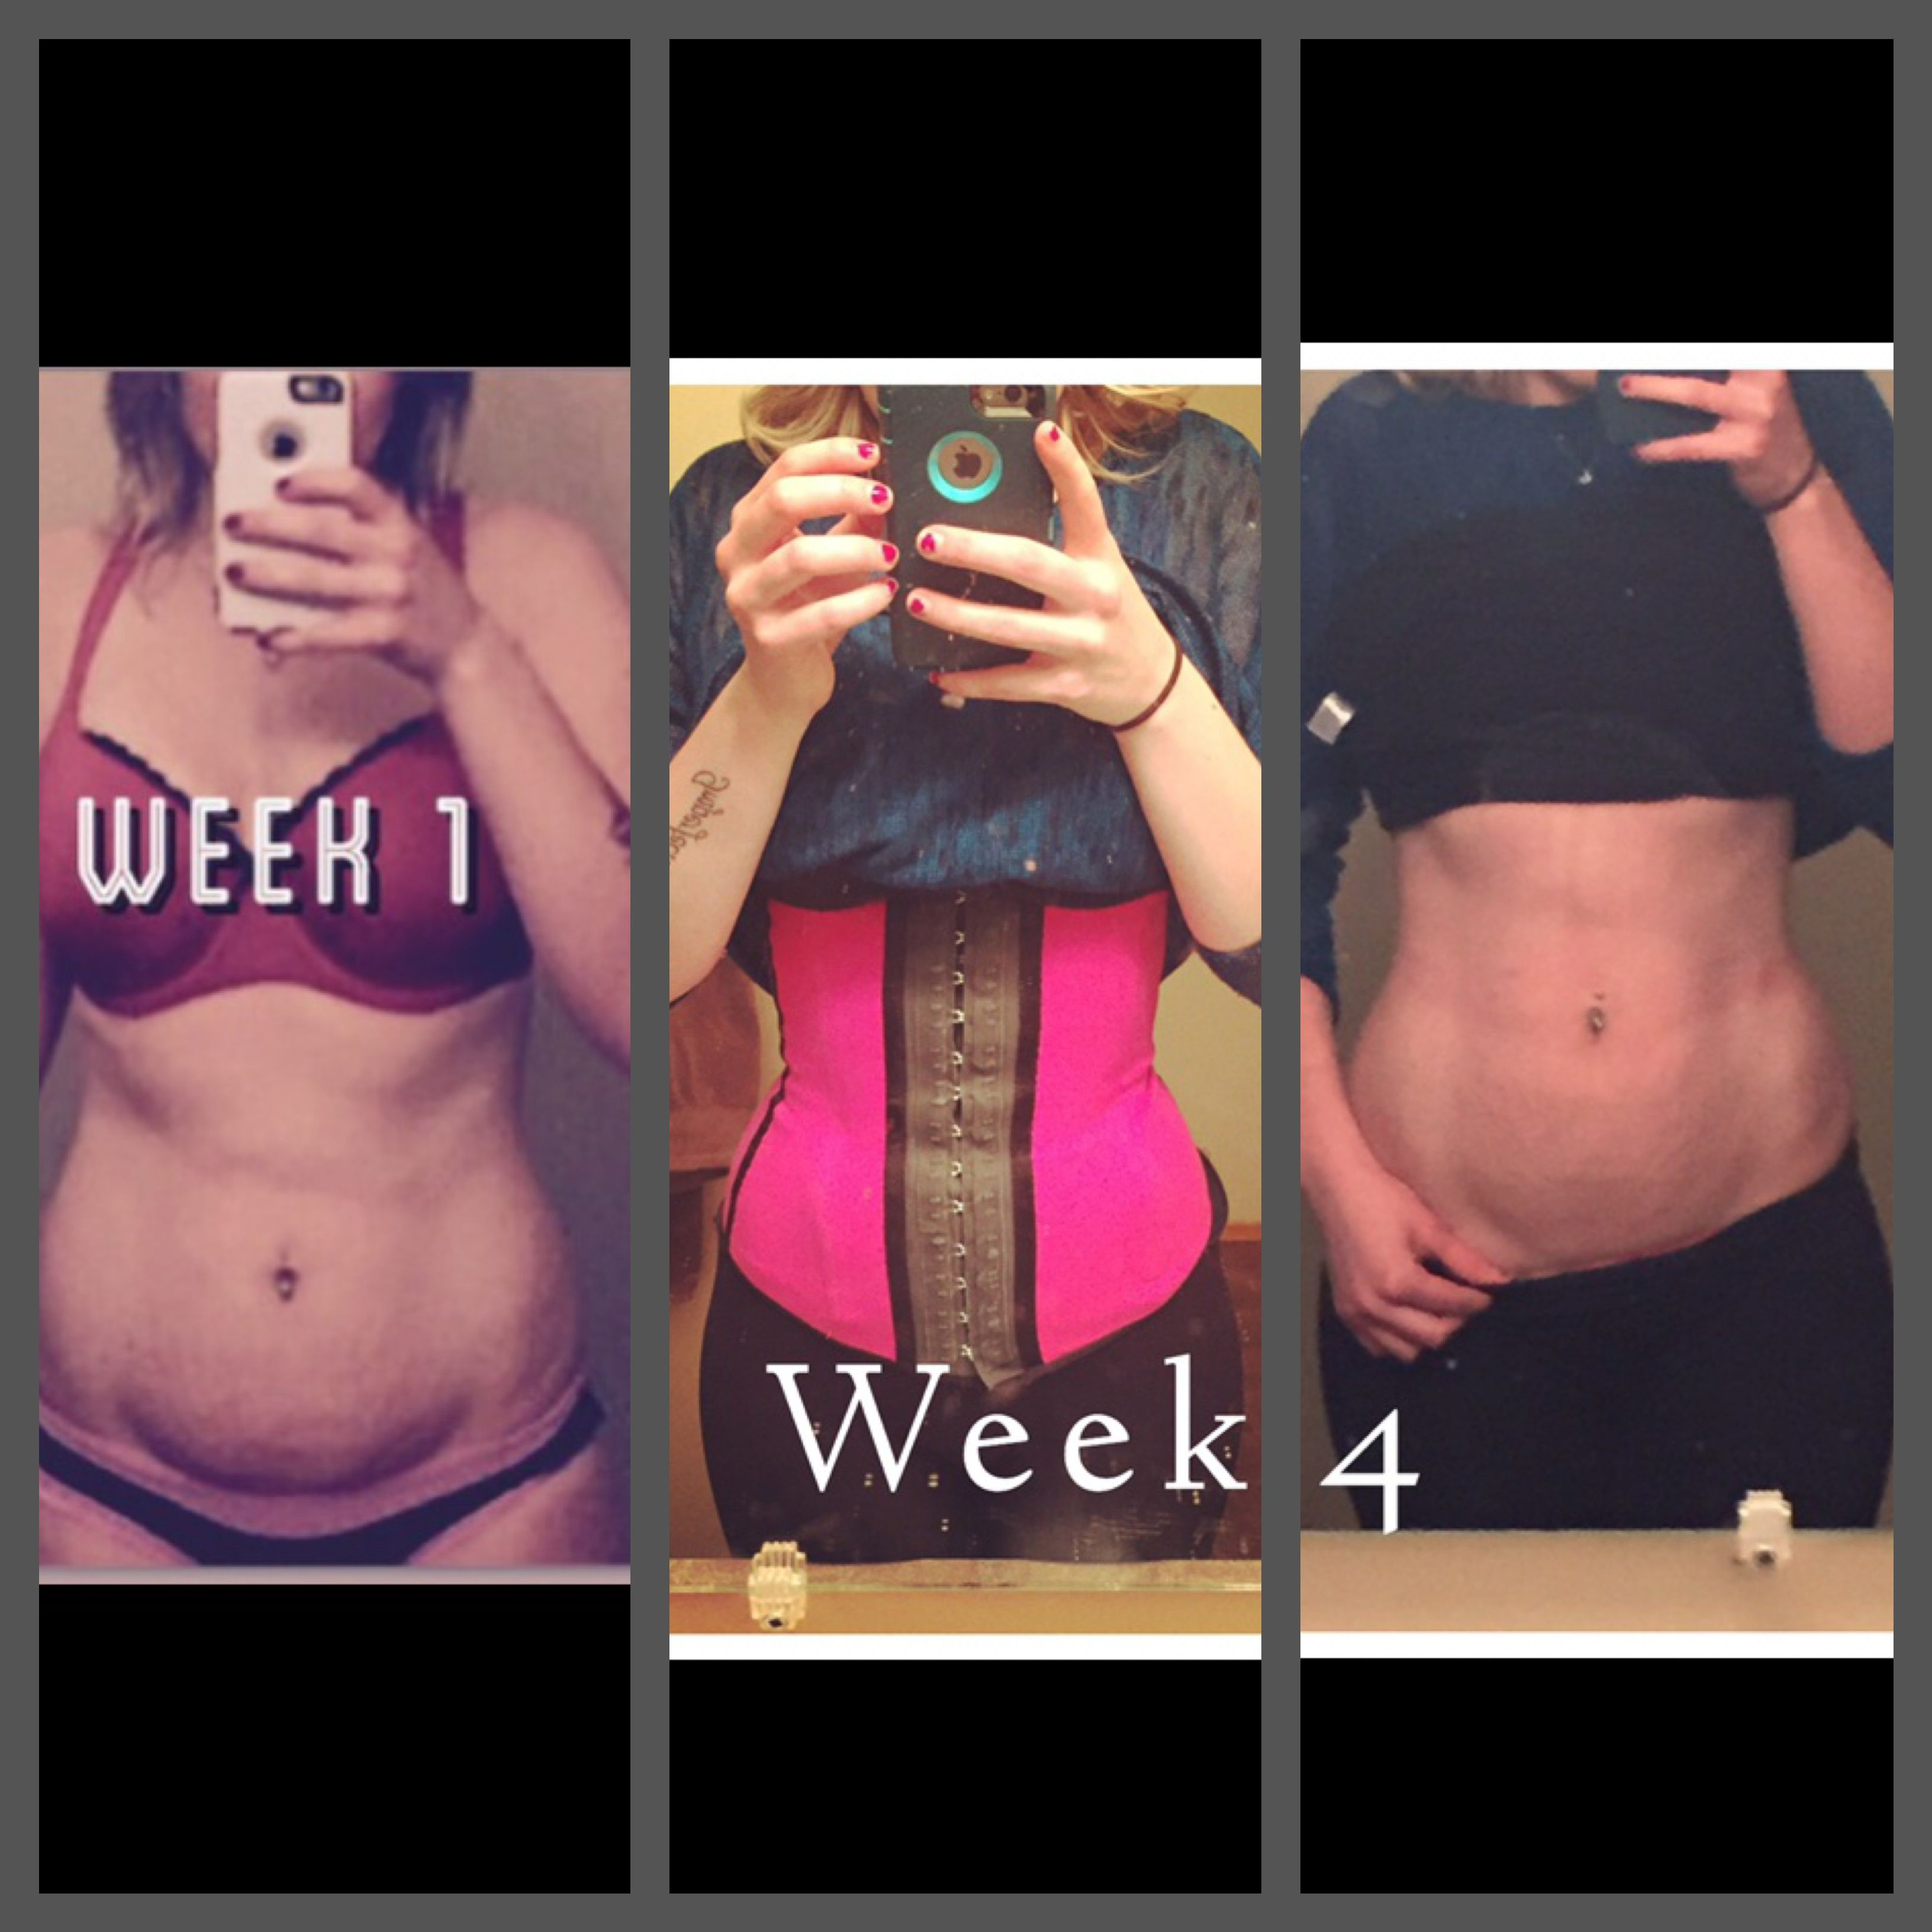 c703c160dc0 4 week results from using the KJCOUTURE FAJA (Waist Trainer ...